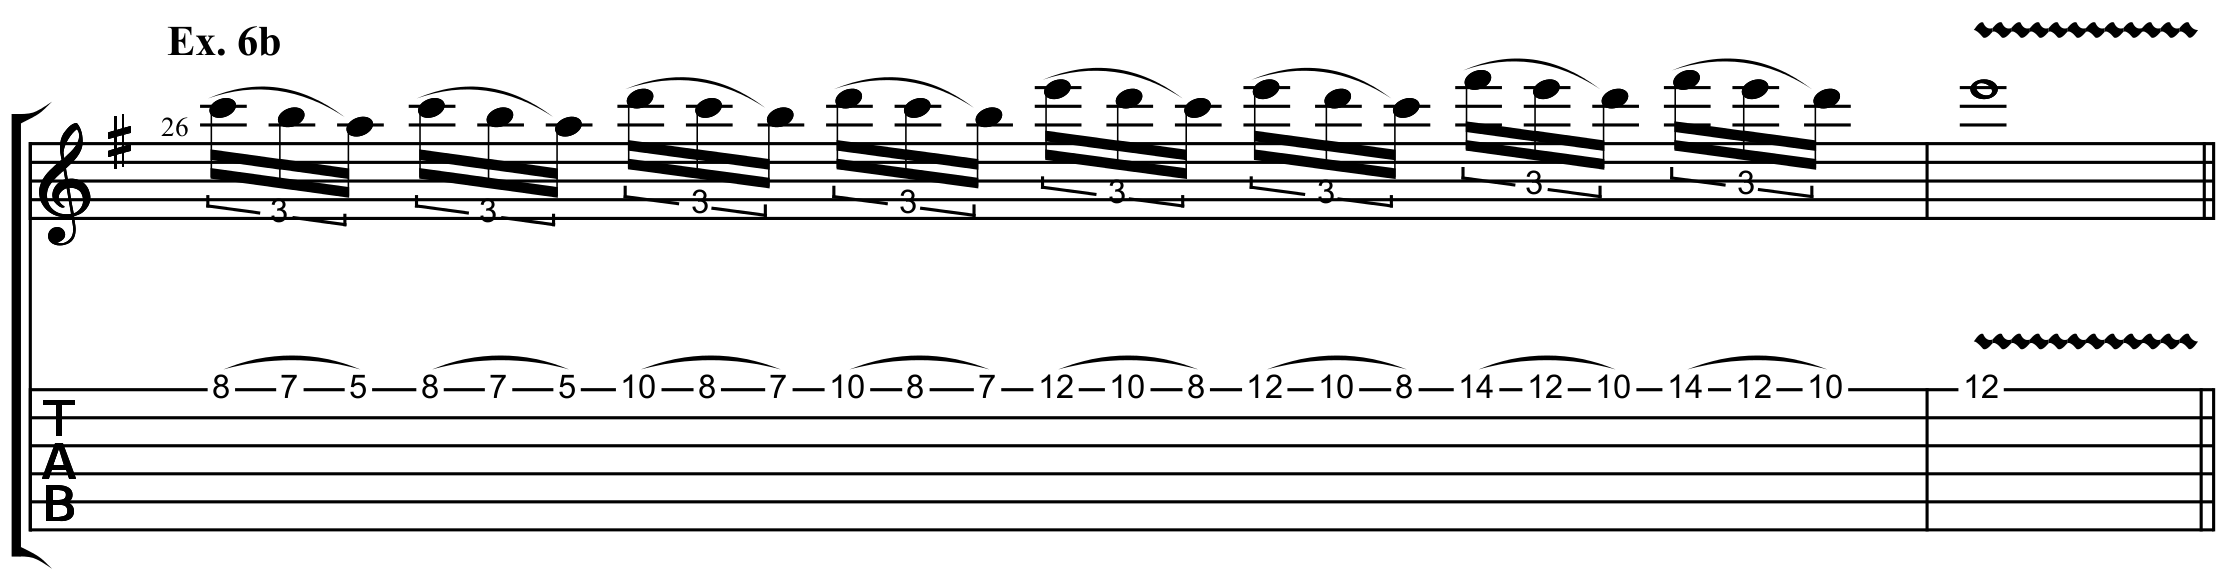 a single string lead guitar pattern that uses many scale shapes across the neck